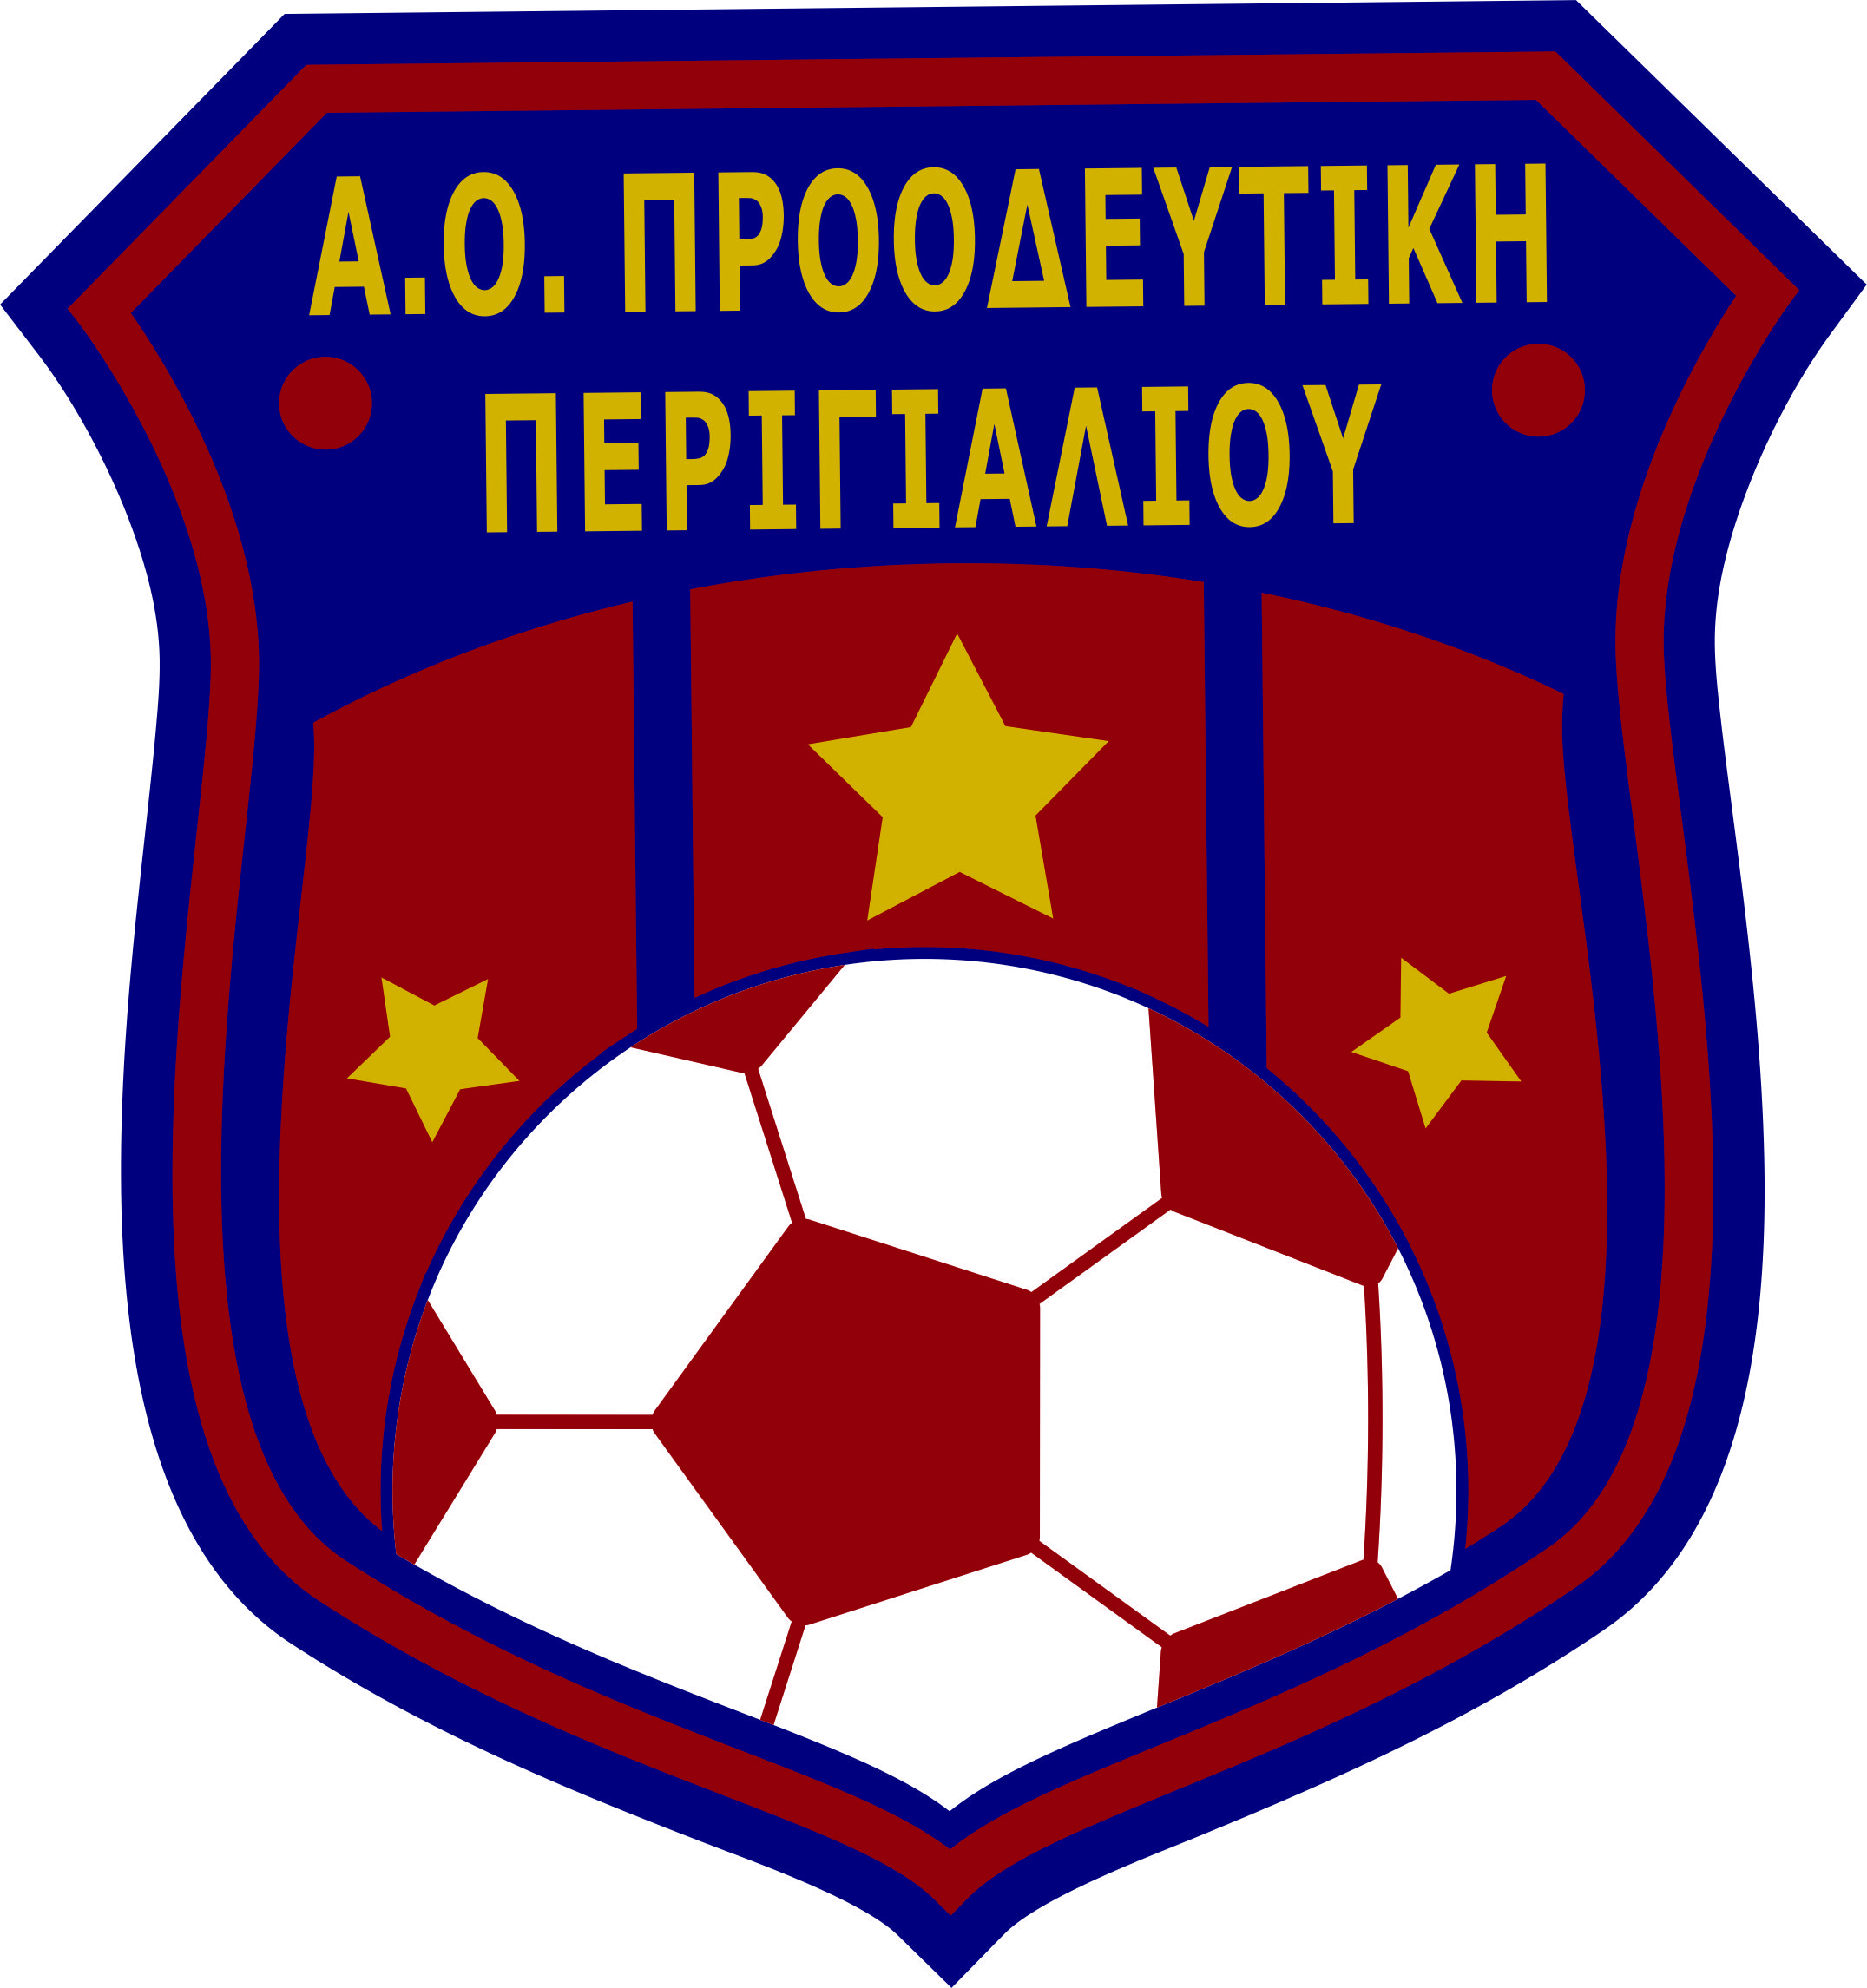 https://www.epskor.gr/media/bearleague/bl15089324511360.jpg